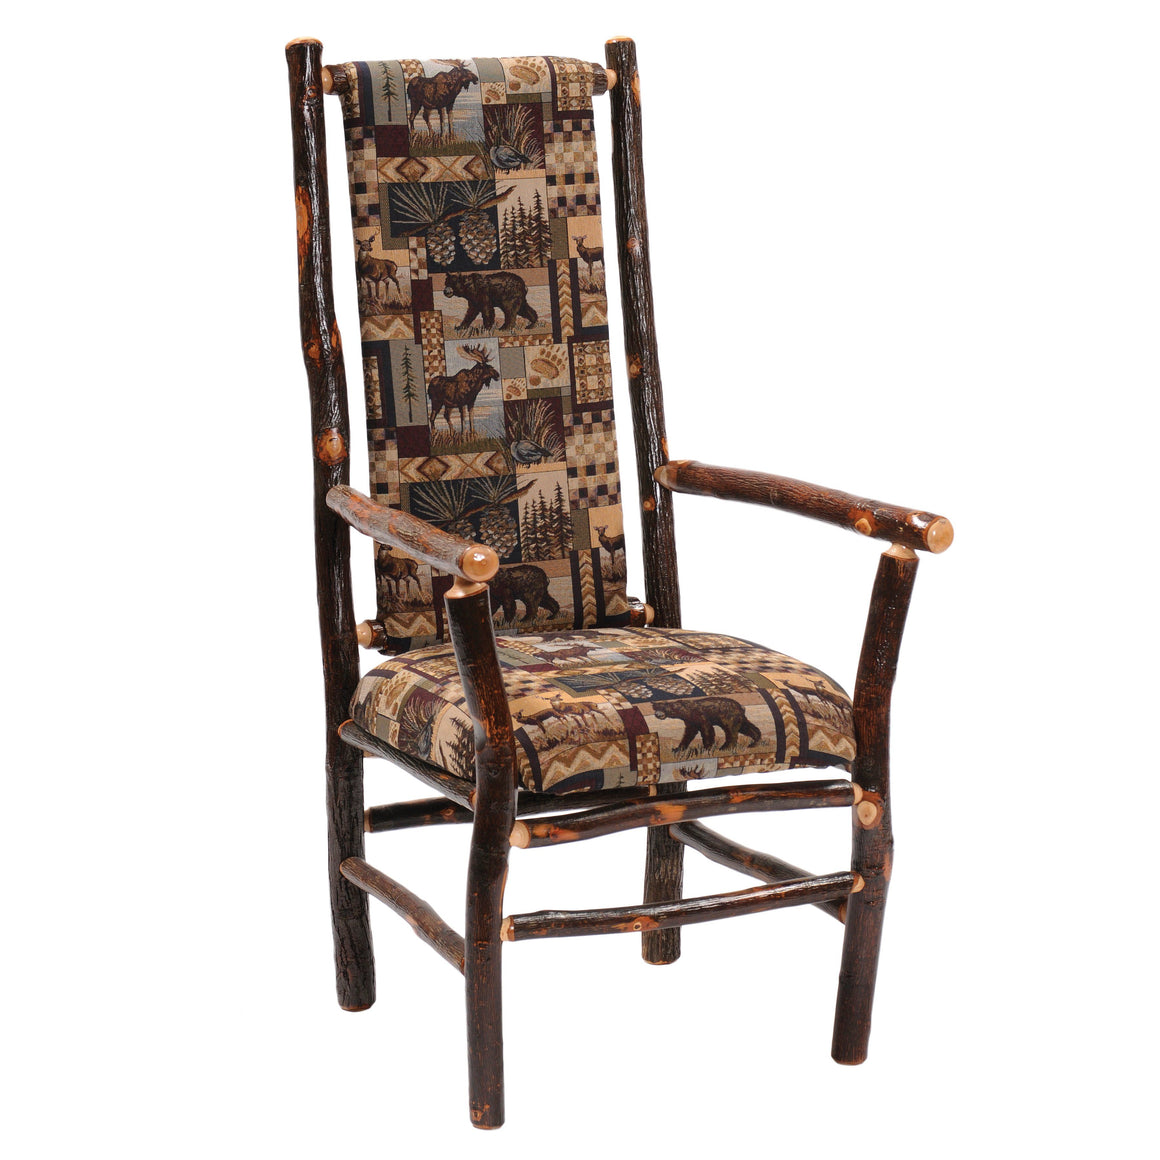 Natural Hickory Log High-back Arm Chair - Standard Finish Chair Fireside Lodge Customer's Own Material